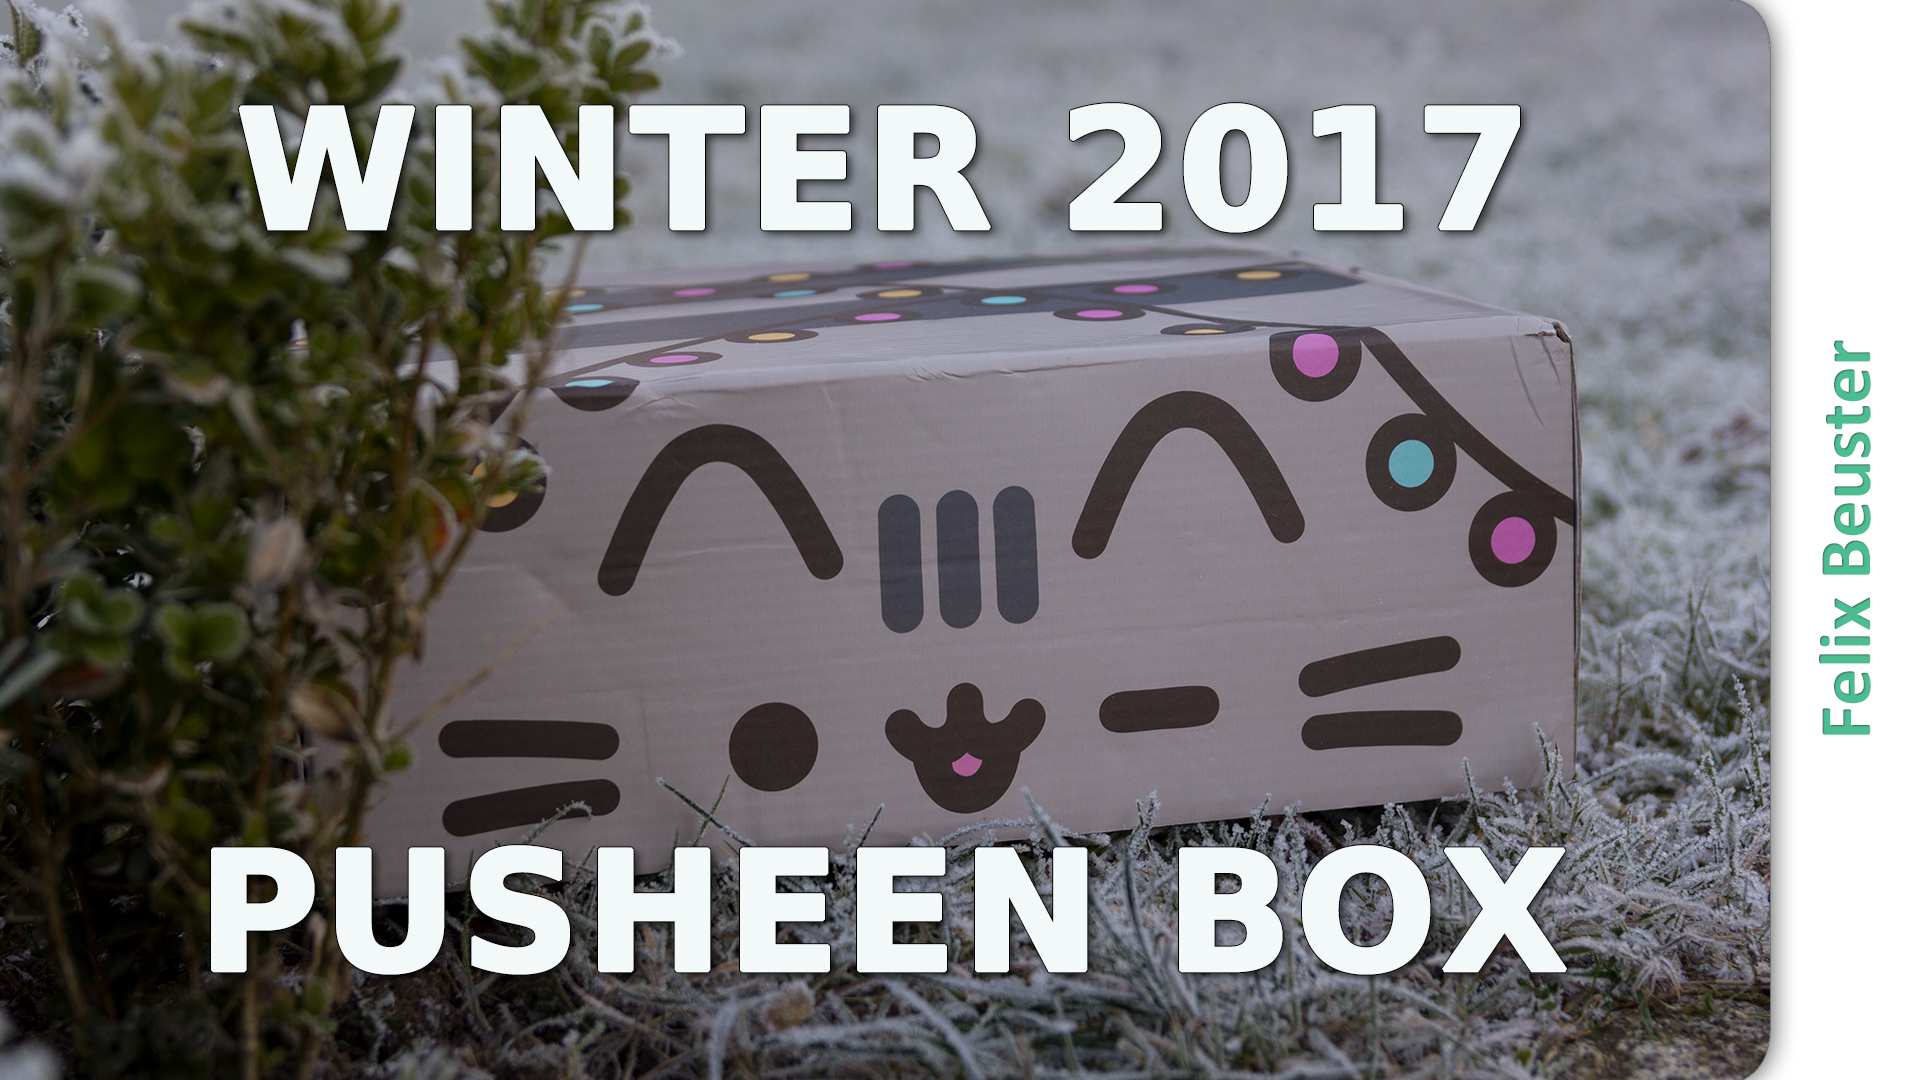 Pusheen Box Winter 2017 - Unboxing und Review